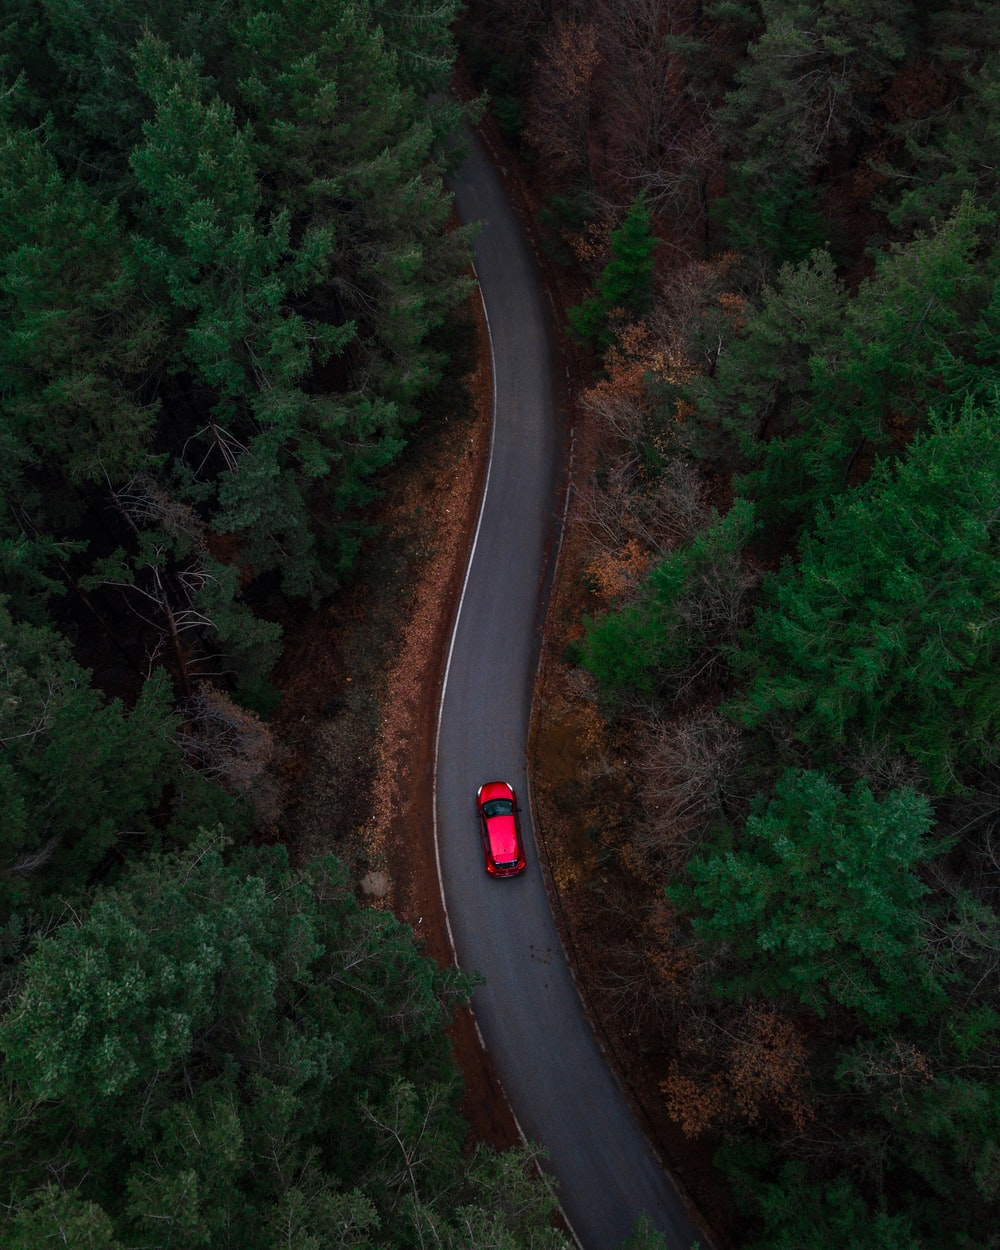 aerial photo of red car passing by green trees